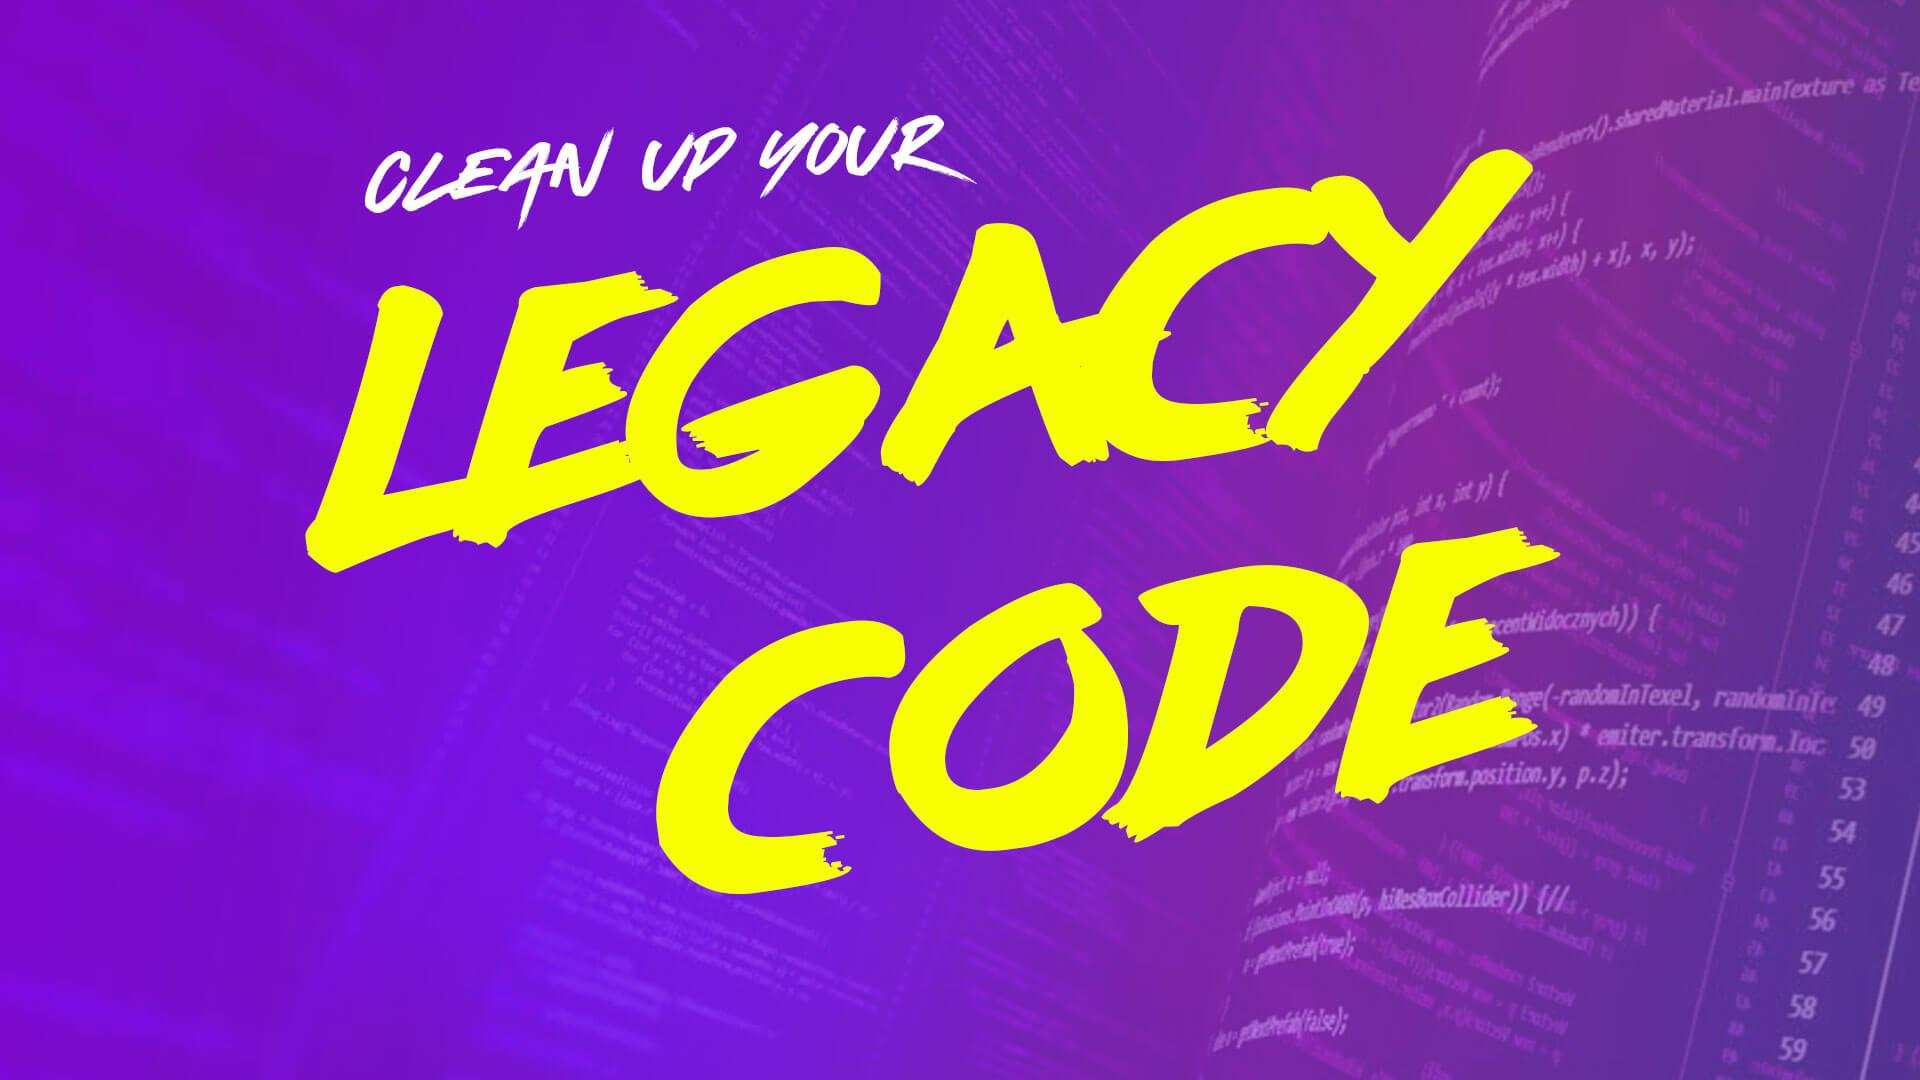 Clean Up Your Legacy Code